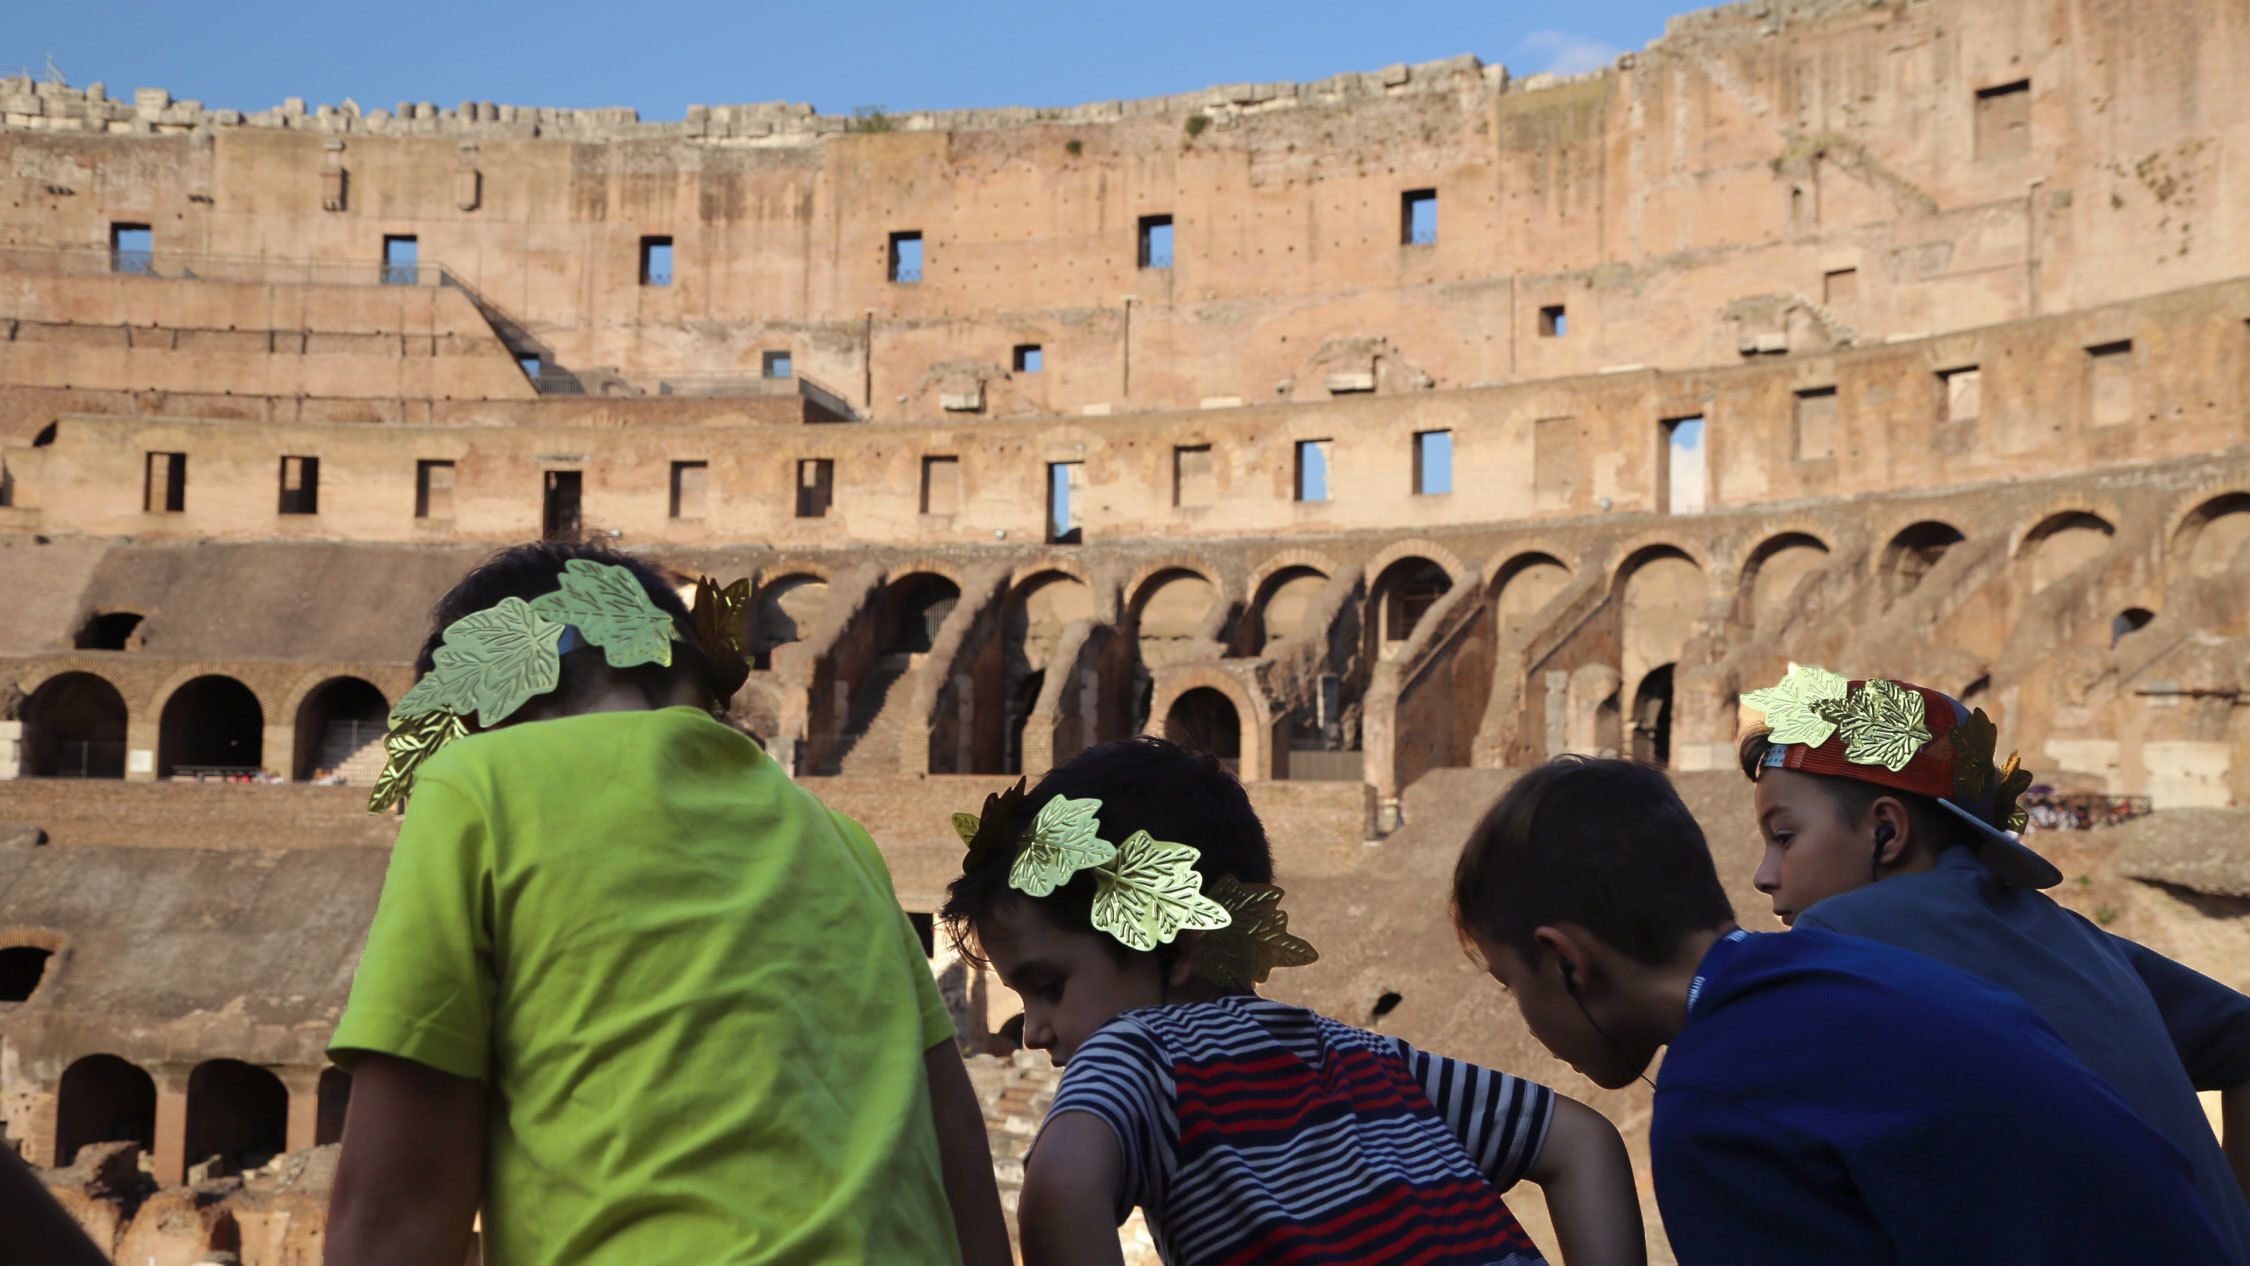 The Colosseum with a group of young boys wearing laurel wreaths in Rome.